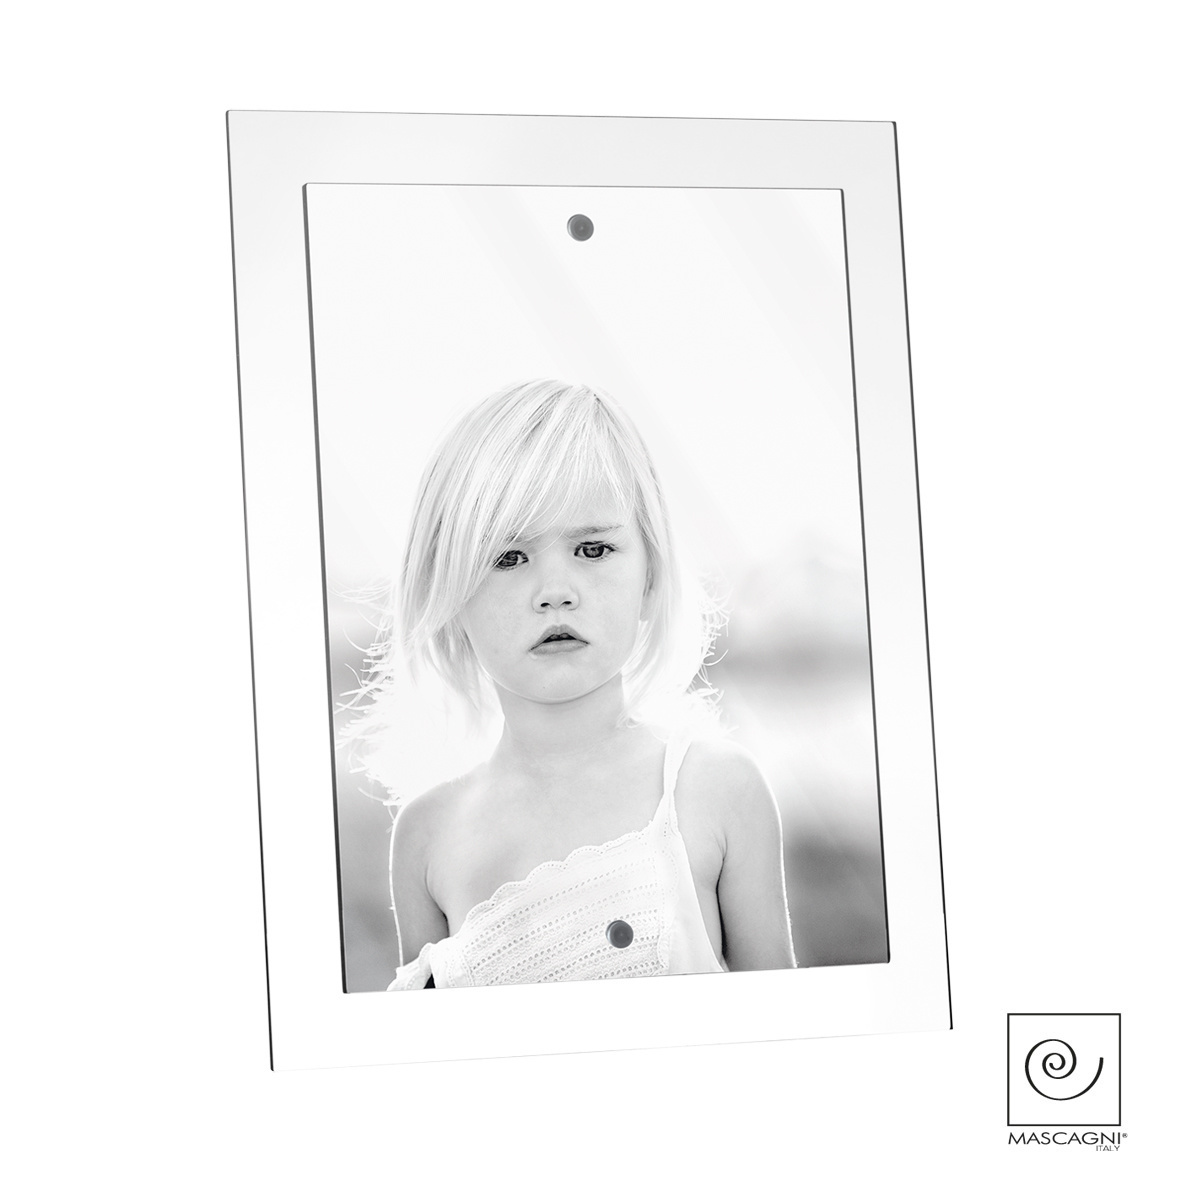 Art Mascagni A511 PHOTO FRAME 15X20 - COL.WHITE